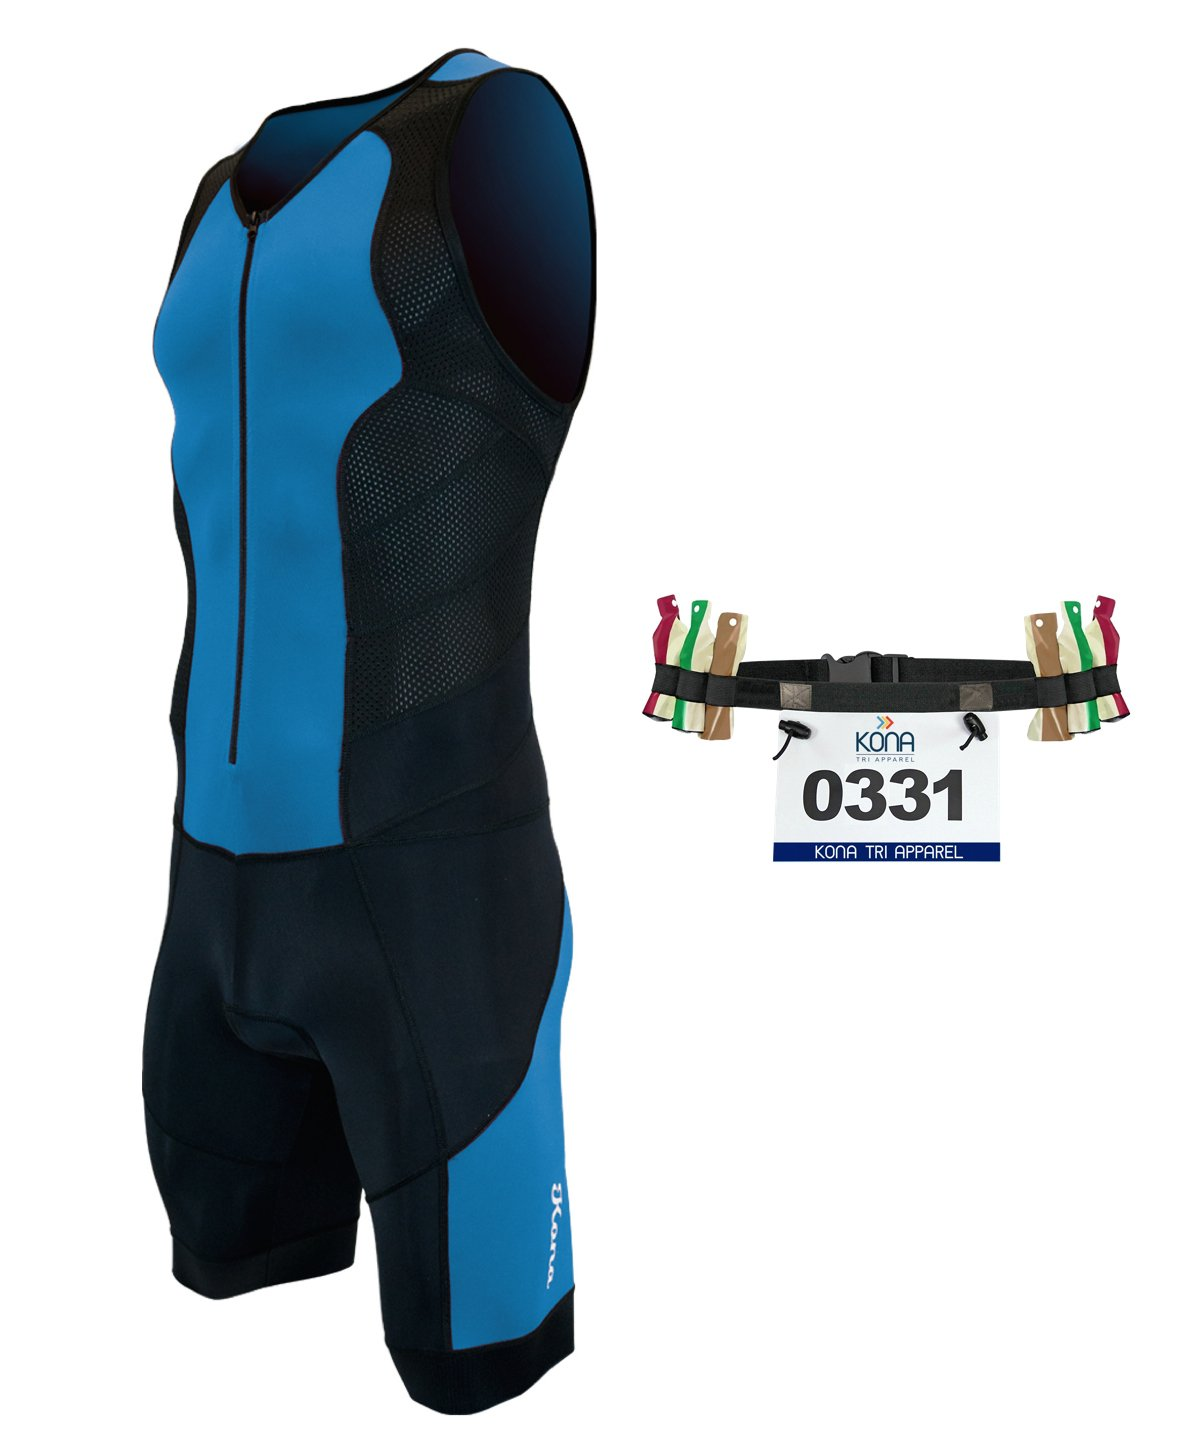 Kona II Men's Triathlon Suit - Sleeveless Speedsuit Skinsuit Trisuit with Storage Pocket and Bonus Race Bib Belt (Blue/Black, Small)